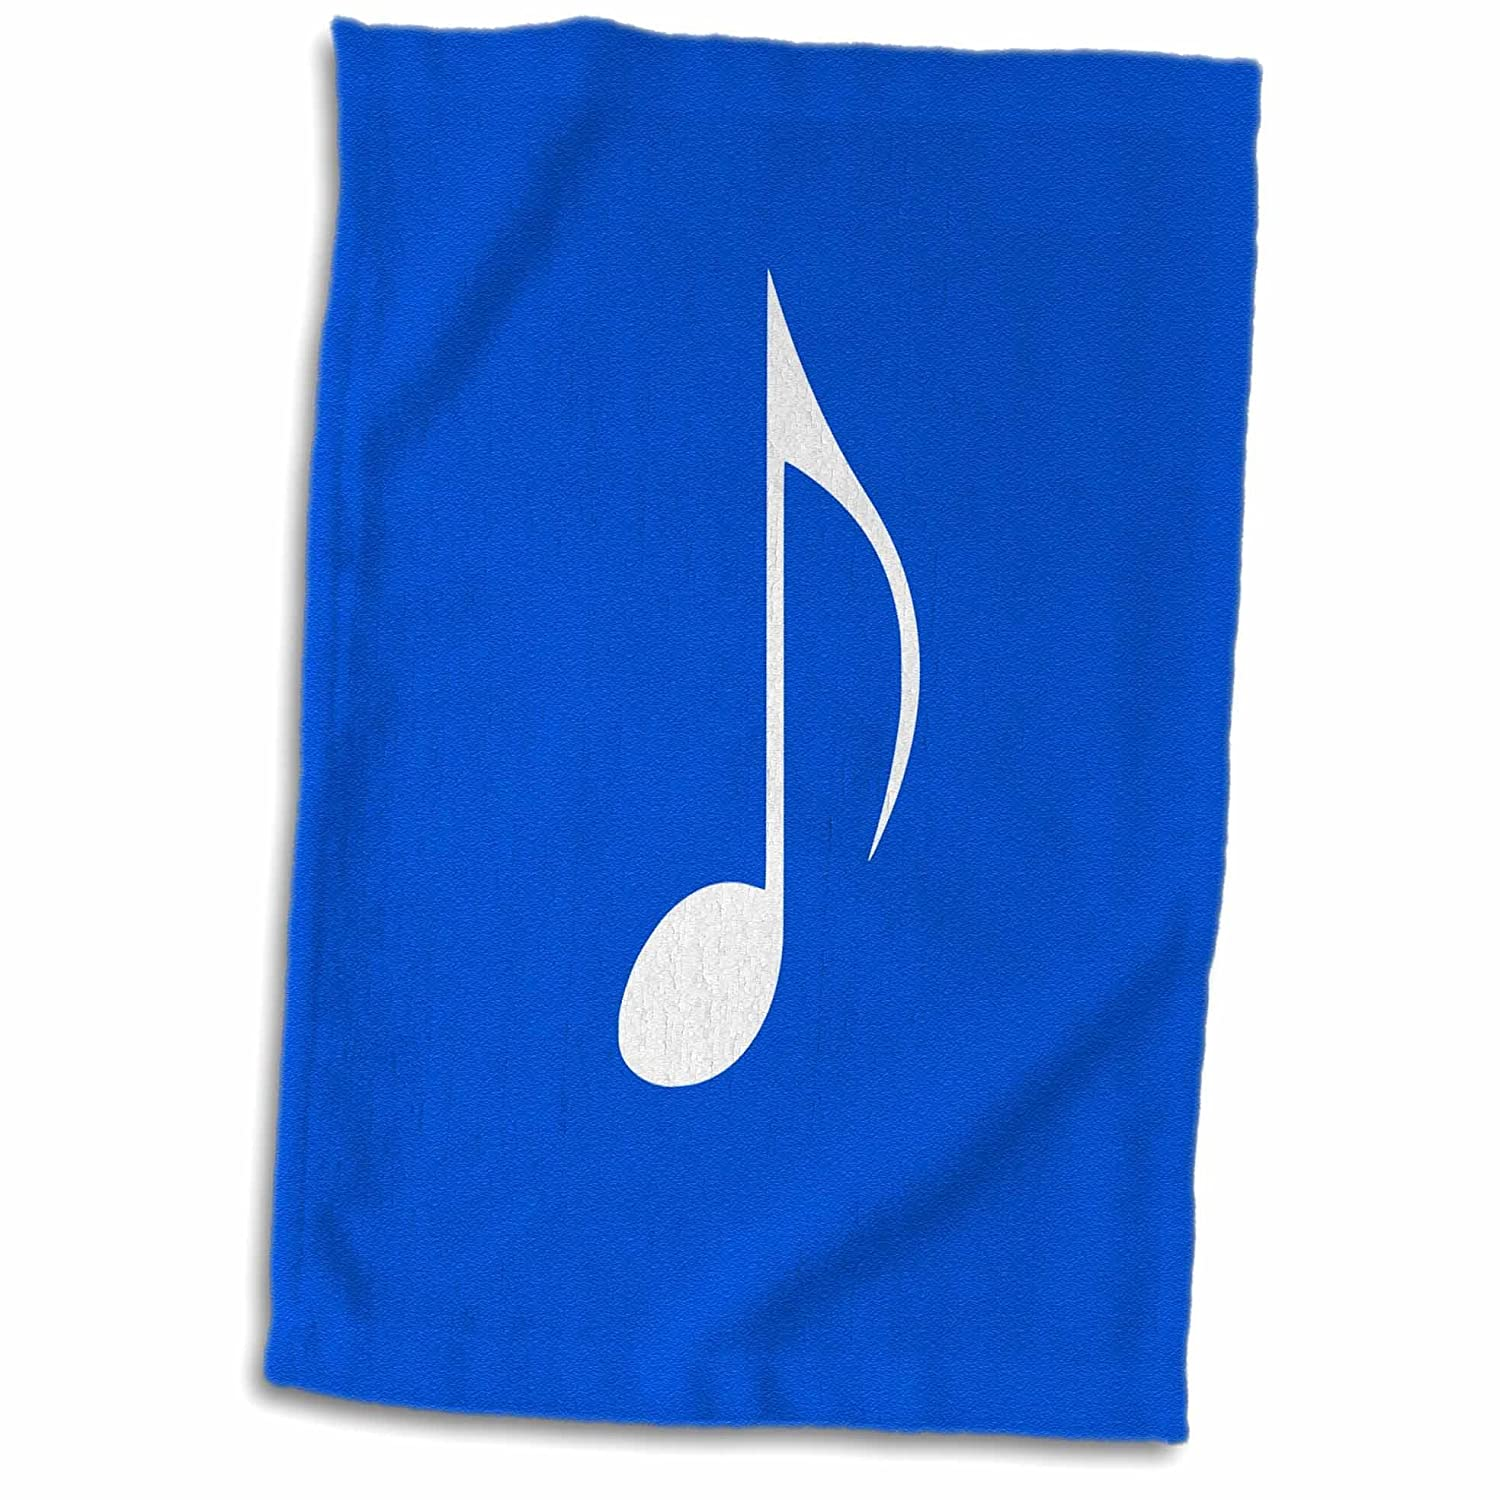 3D Rose Dark Blue Eighth Note-One Single White Musical Quaver Hand Towel 15 x 22 Multicolor